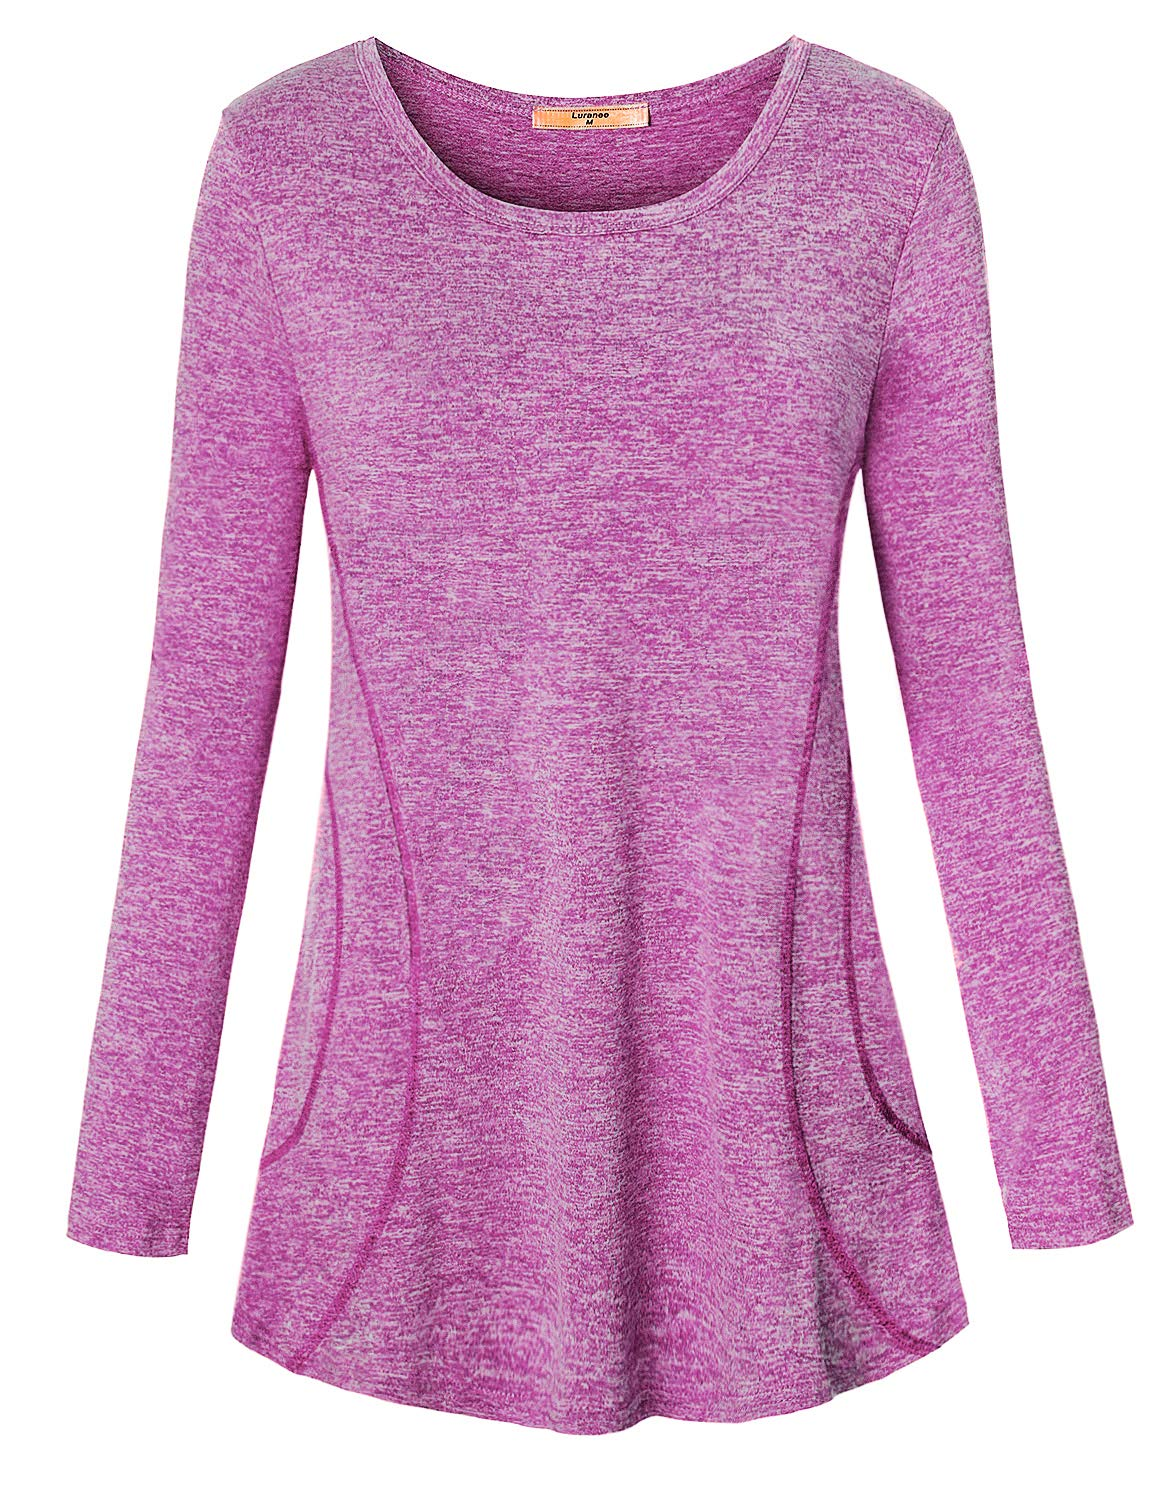 Luranee Sun Protection Clothing Women, Long Sleeve Workout Tops Energetic Lightweight Dressy Comfy Essential Polyester Pilates Moisture Wicking Athletic Shirts Zulily Gym Blouse Tunics Purple L by Luranee